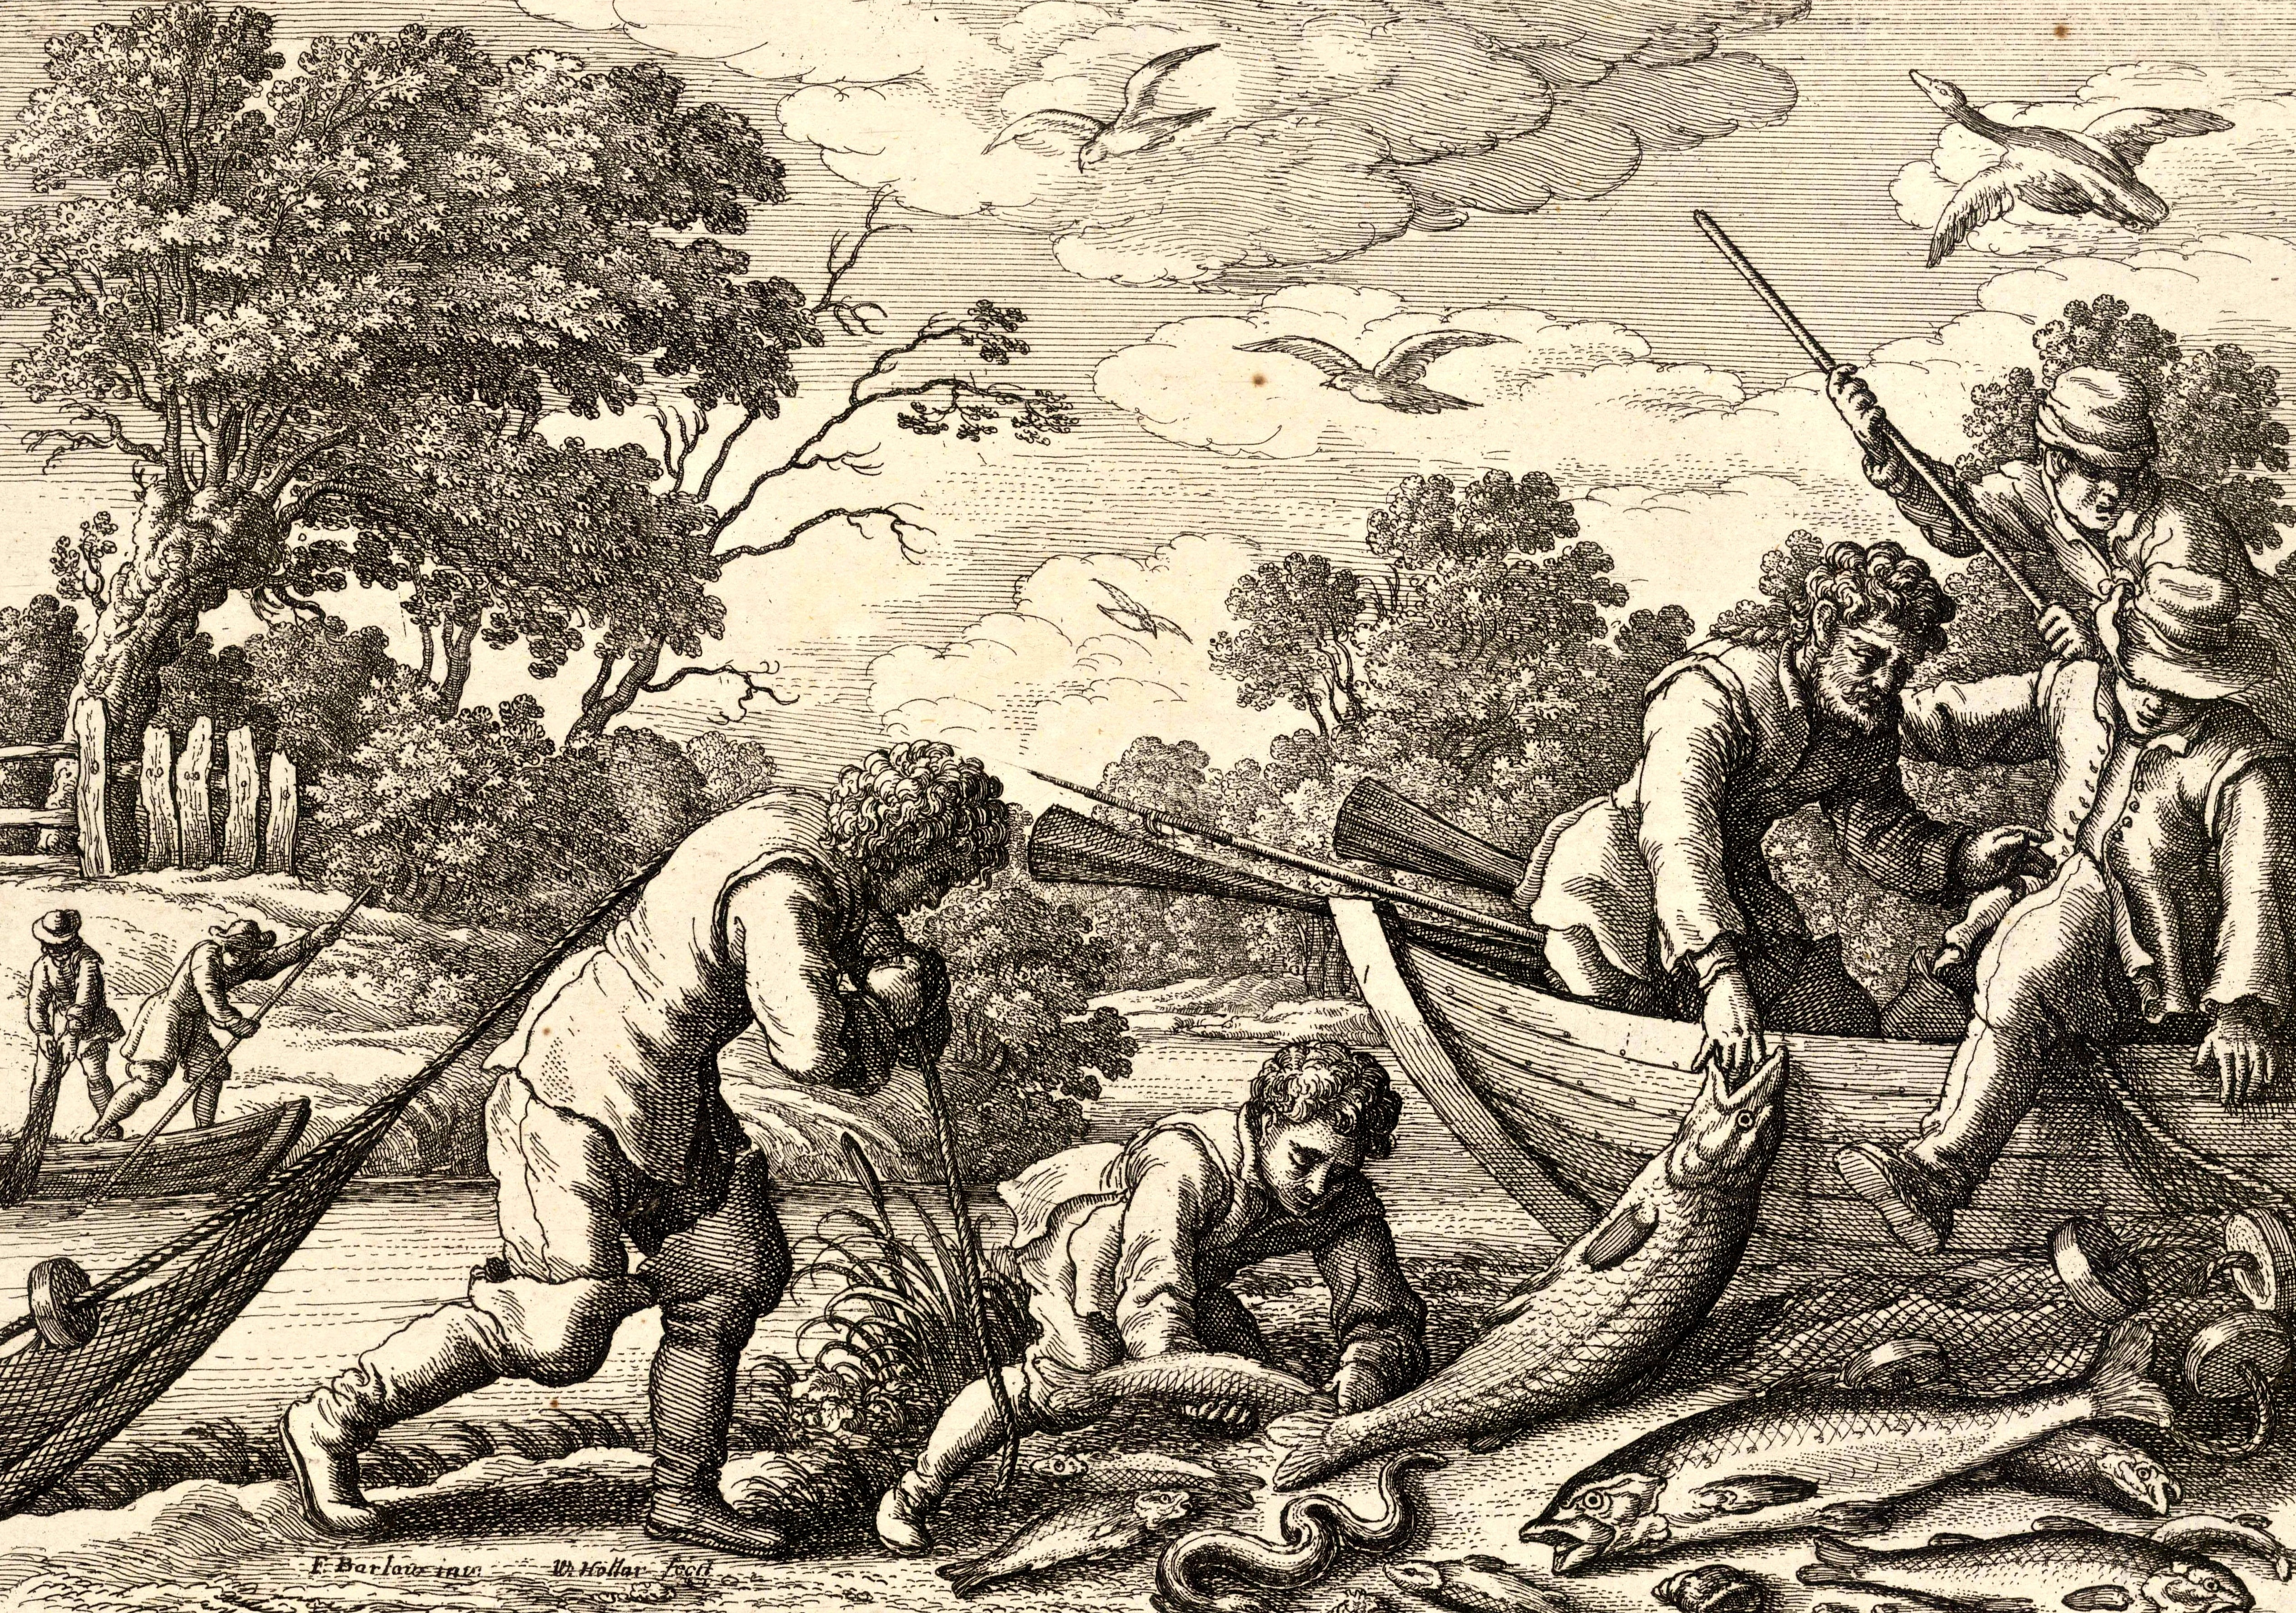 Wenceslas_Hollar_-_Salmon_fishing_(State_1)